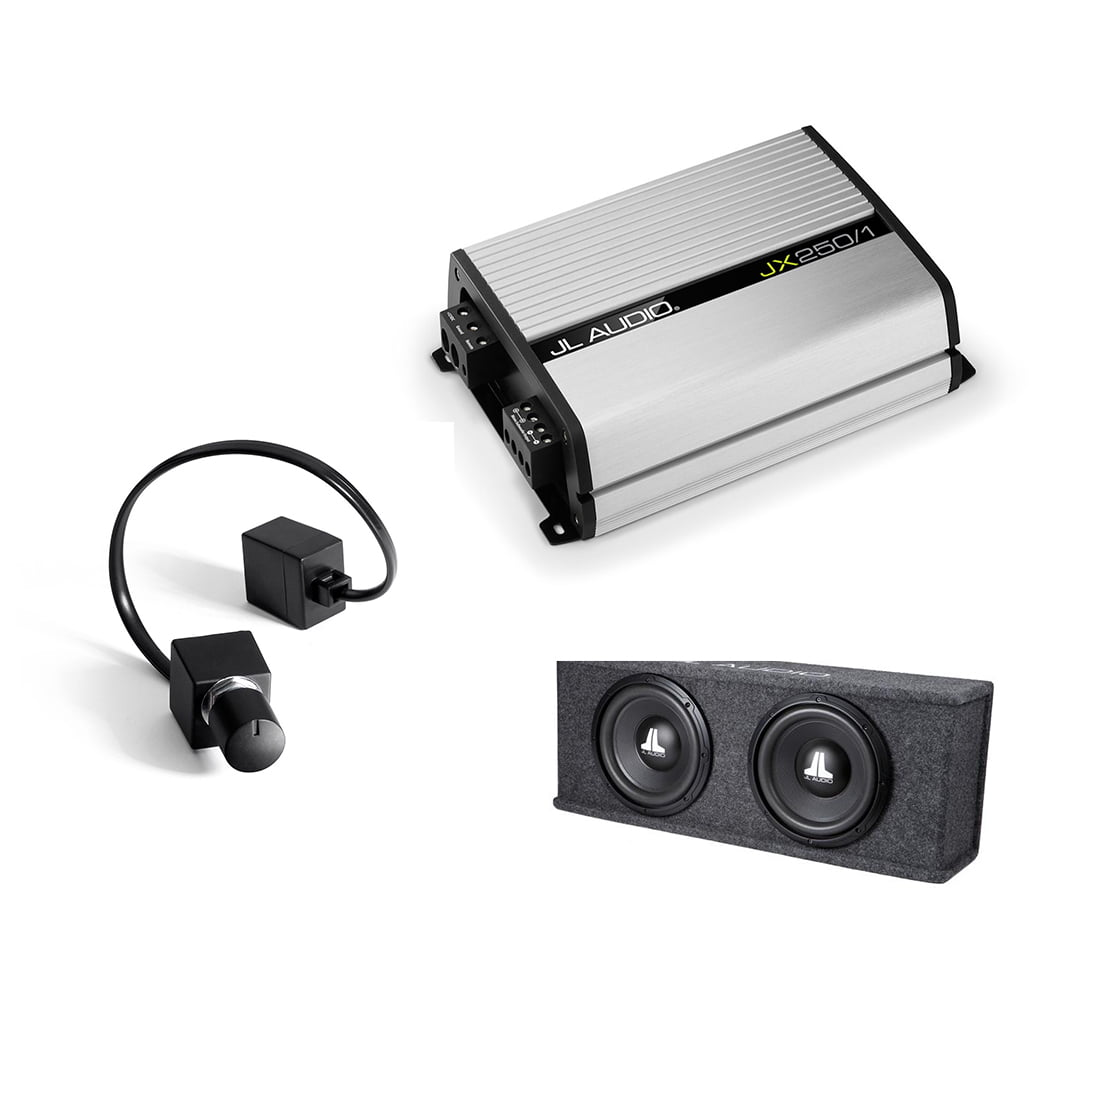 B0071I16DY besides Index php in addition Jl Audio Cs210 Wxv2 further 162018677729 also Product m Clarion X500 2 Sre6932 p 32732. on jl audio amp control